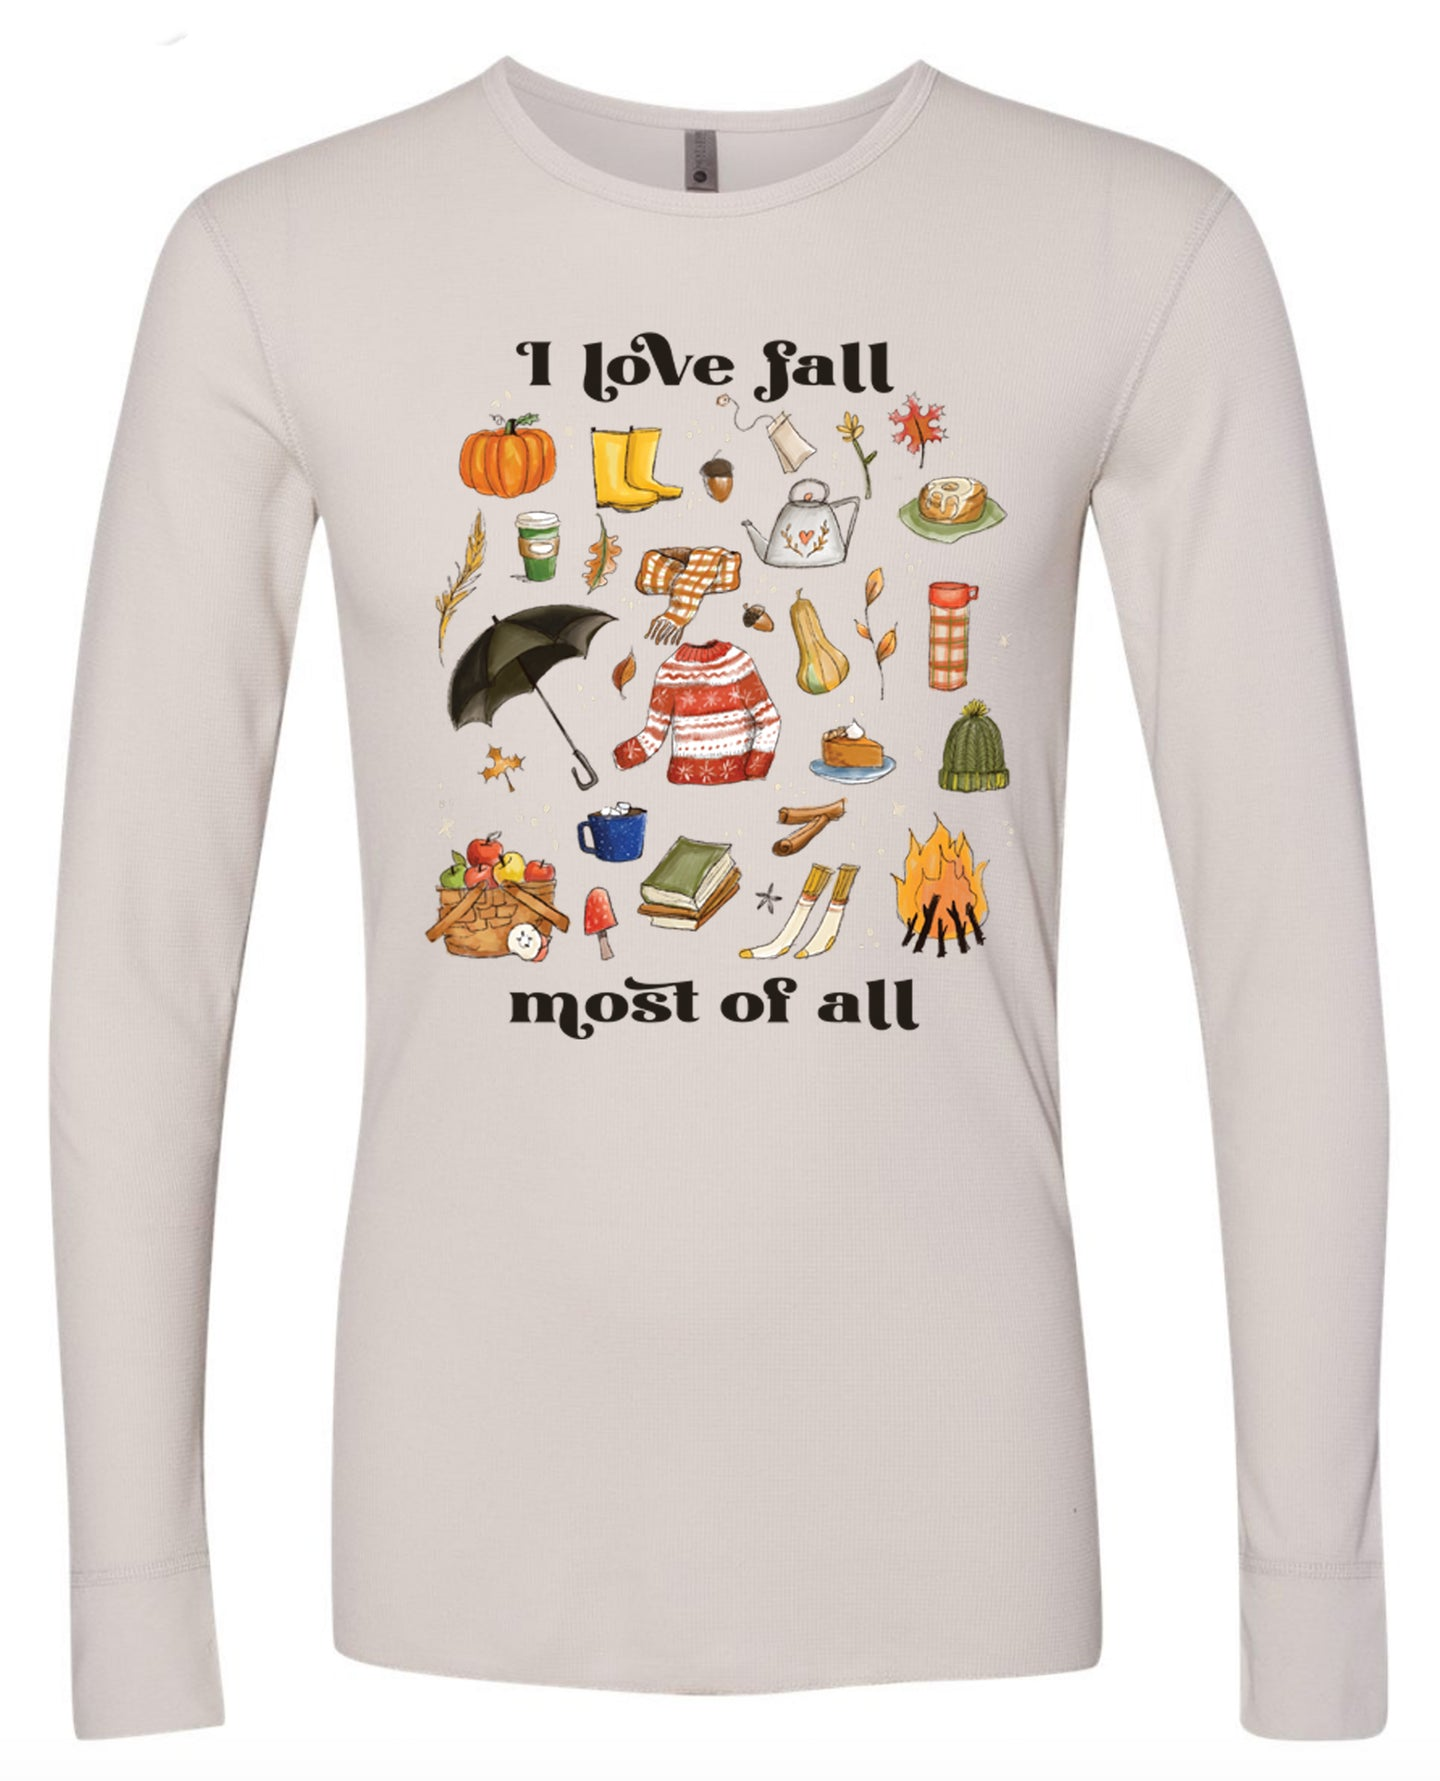 I Love Fall Most of All - Light Gray Mini Waffel Thermal [Unisex Long Sleeves]